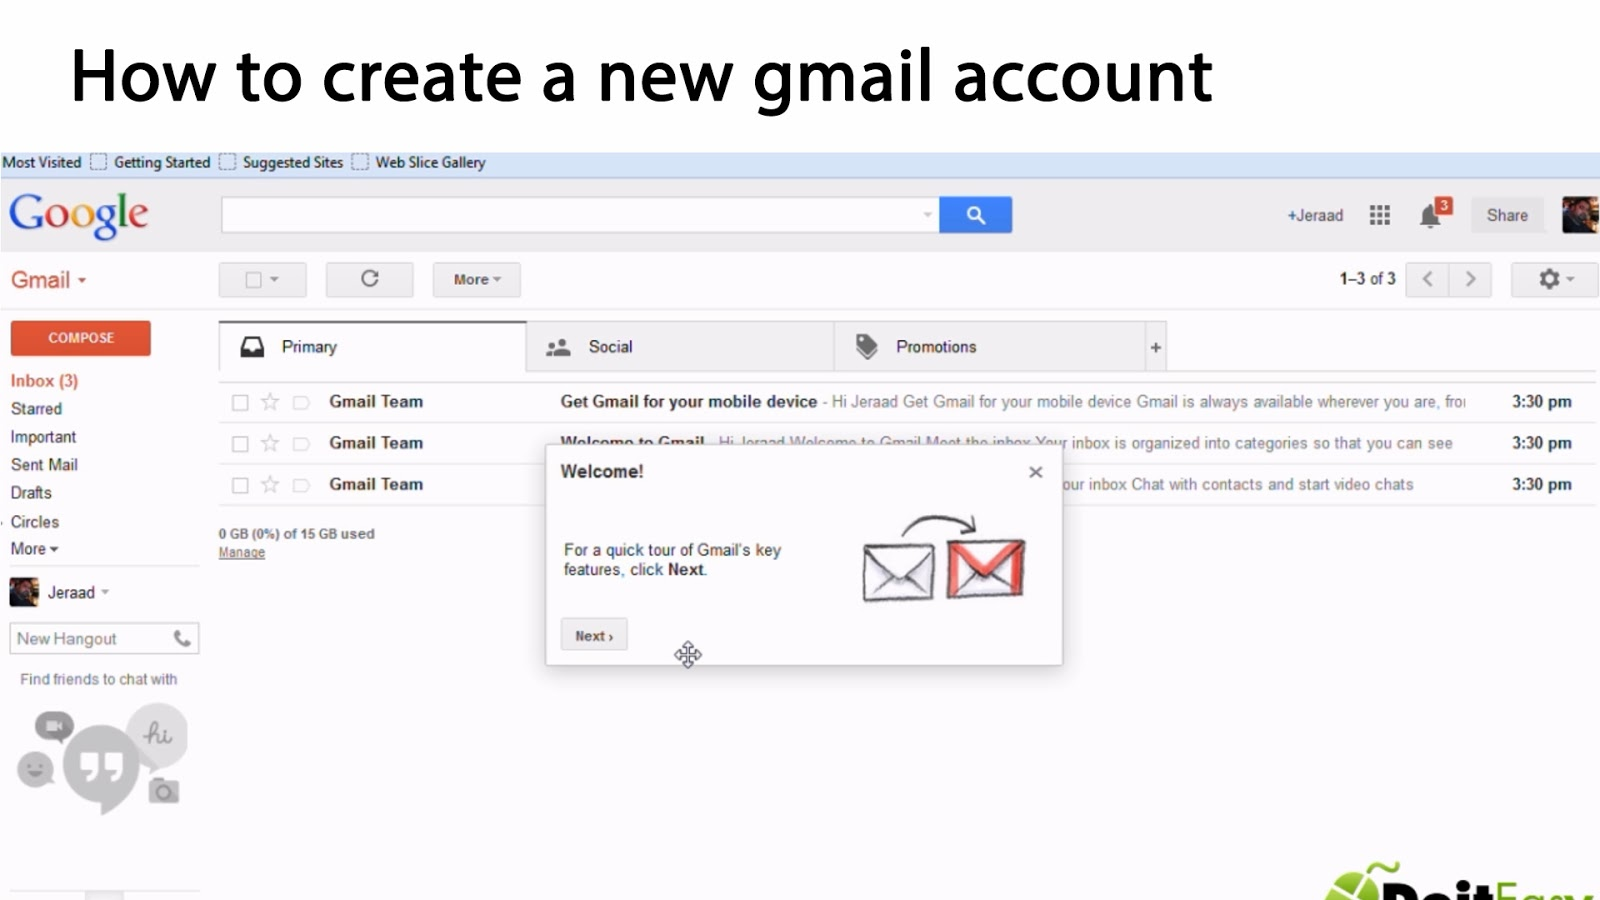 How Do You Make a New Gmail Account?